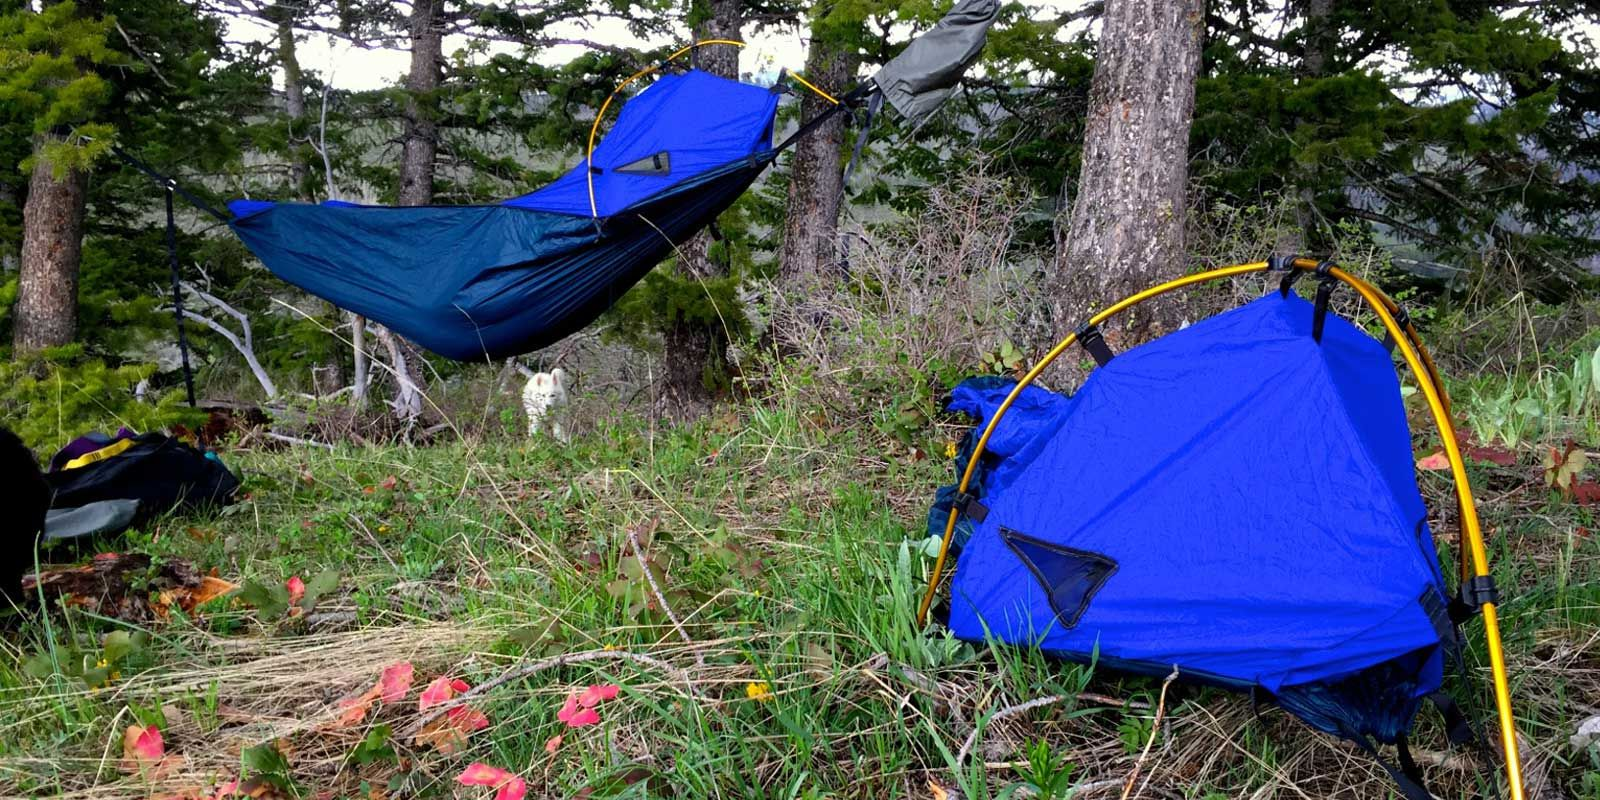 The bivy sack that hangs like a hammock. Versatile and lightweight for any c&ing adventure & The bivy sack that hangs like a hammock. Versatile and lightweight ...